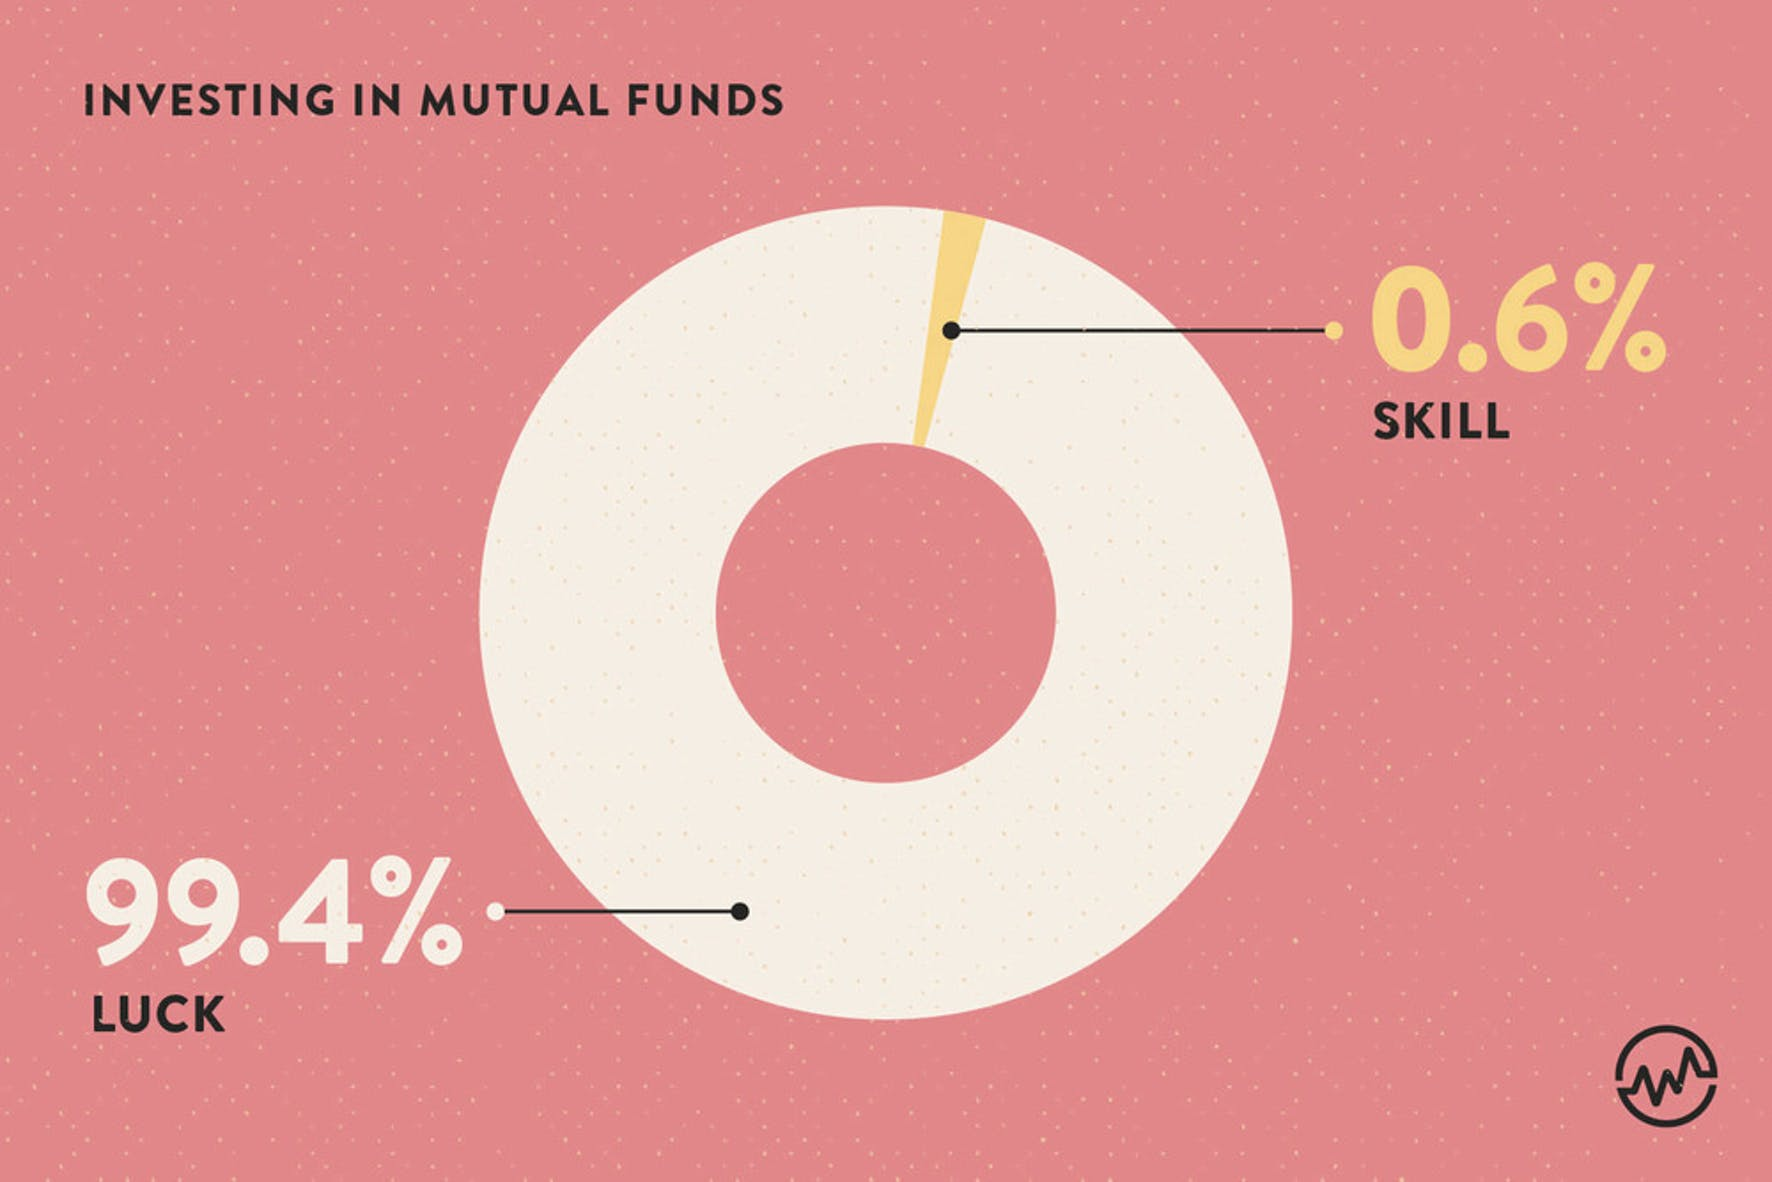 Pie chart for investing in mutual funds - luck vs. skill